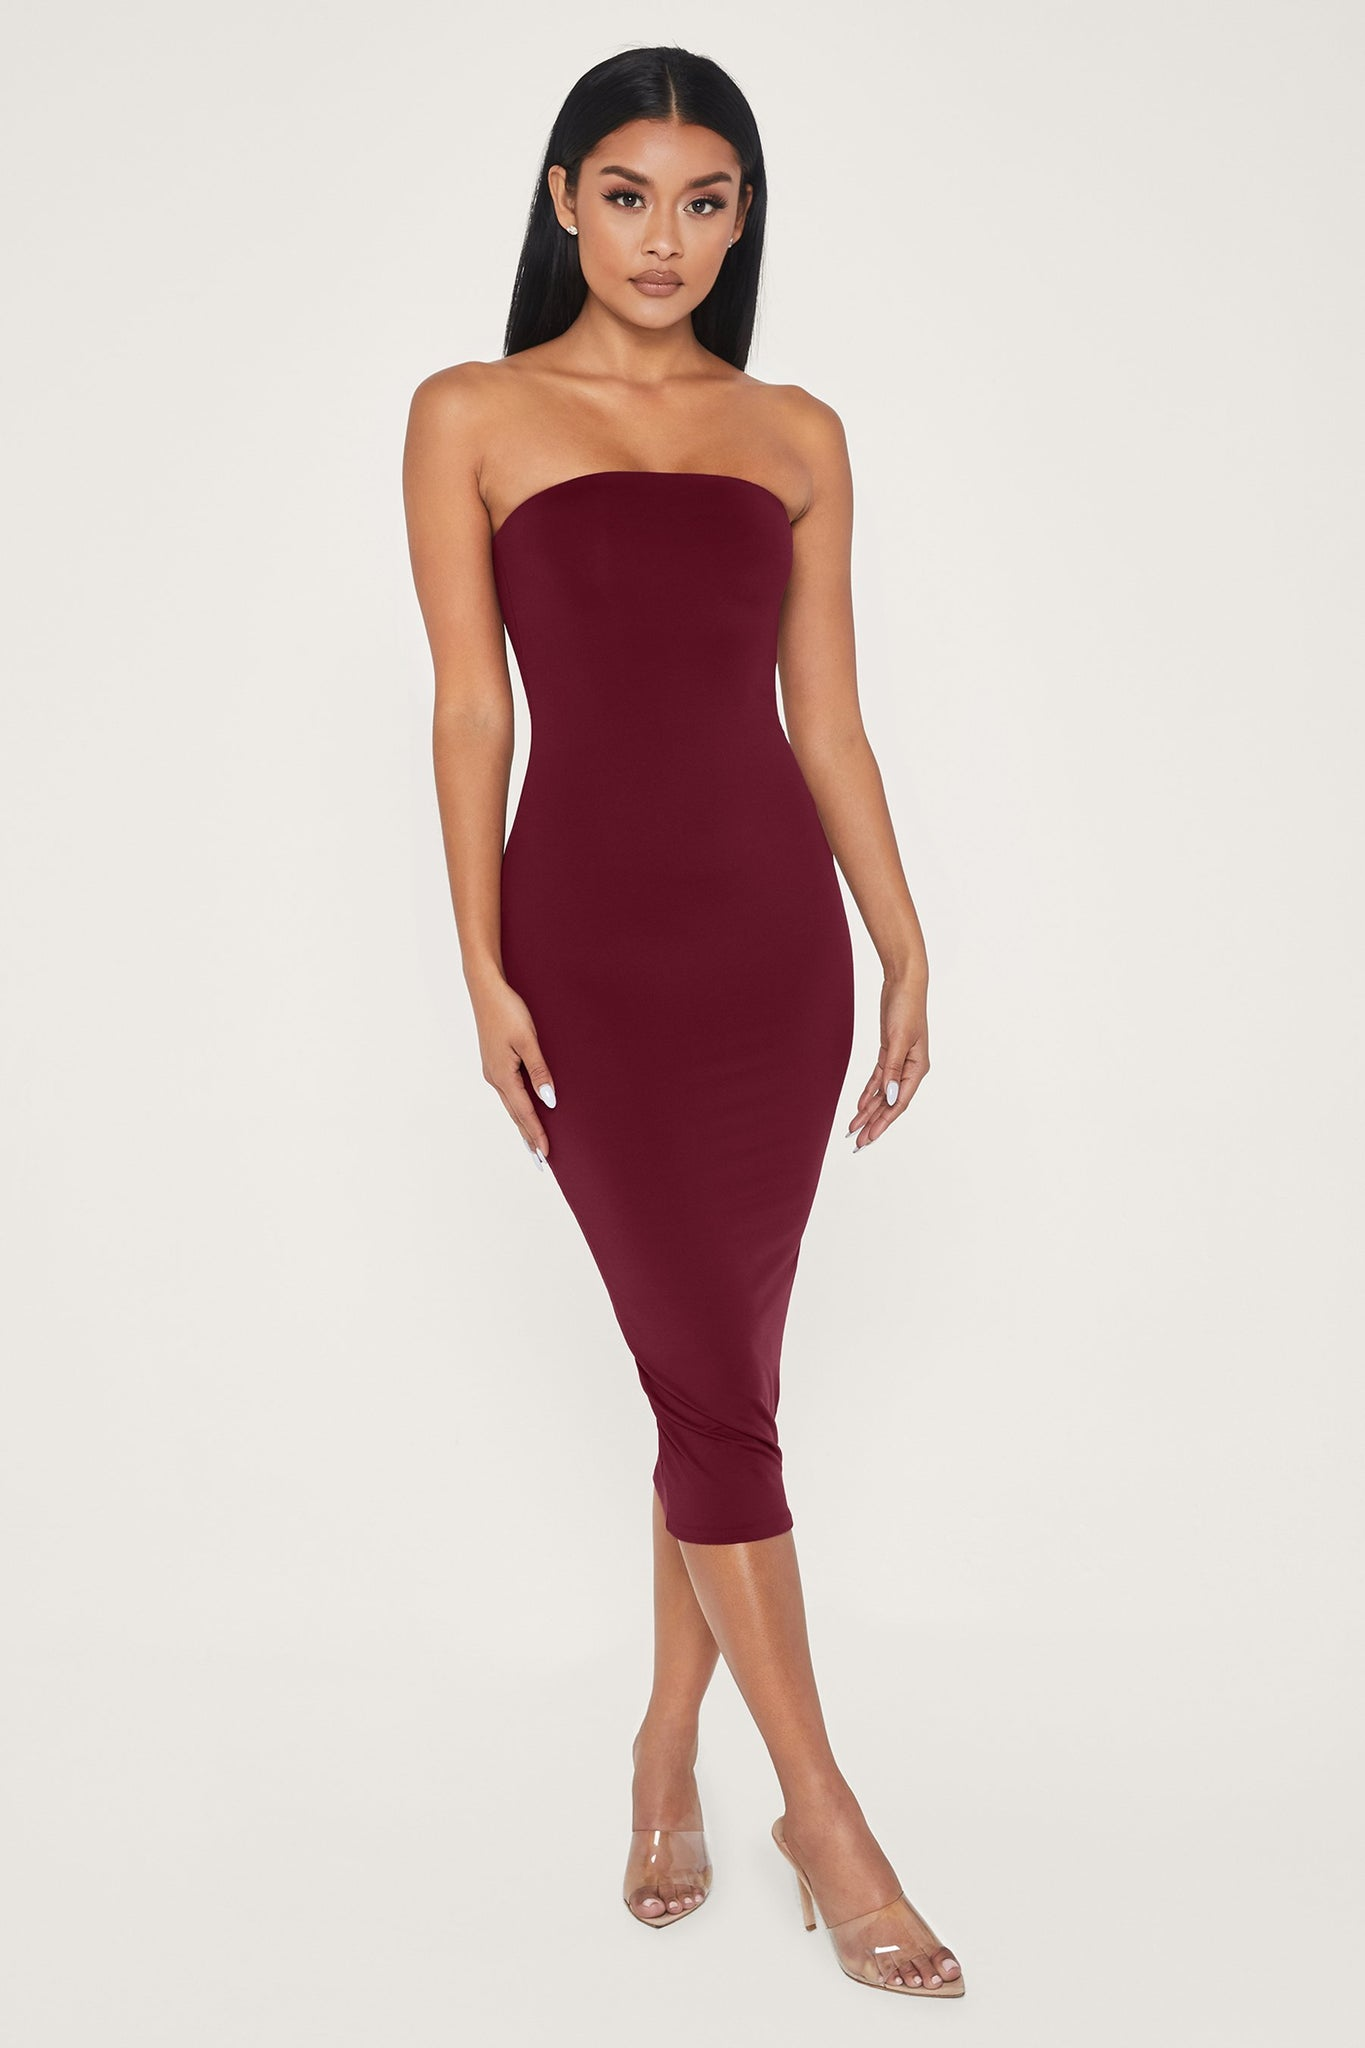 Emilee Strapless Midaxi Dress - Burgundy - MESHKI